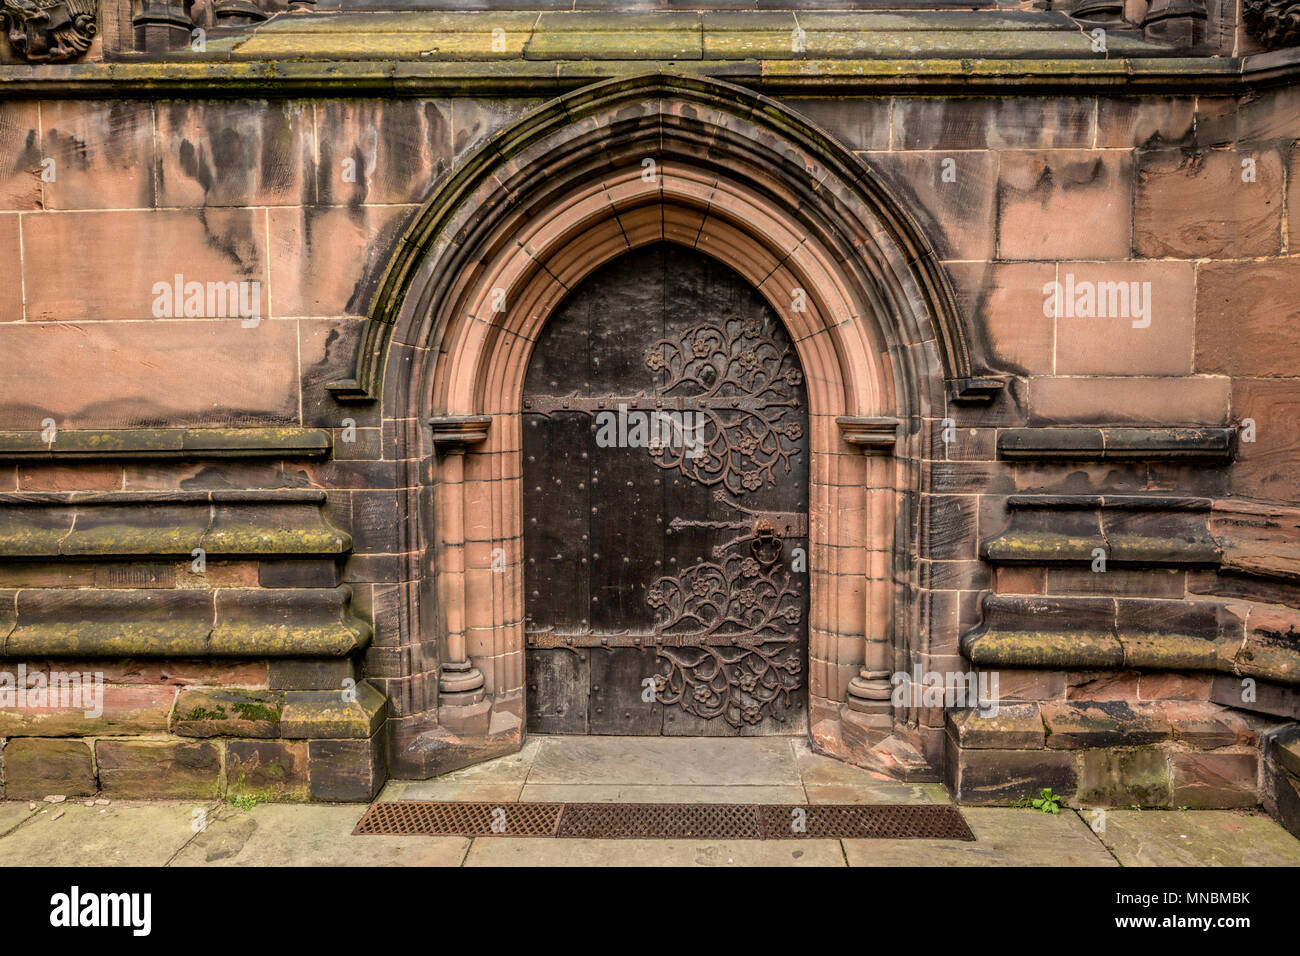 Ancient wooden door with latch of the Cathedral Church of Christ and the Blessed Virgin Mary, Chester, Cheshire, England, UK. - Stock Image